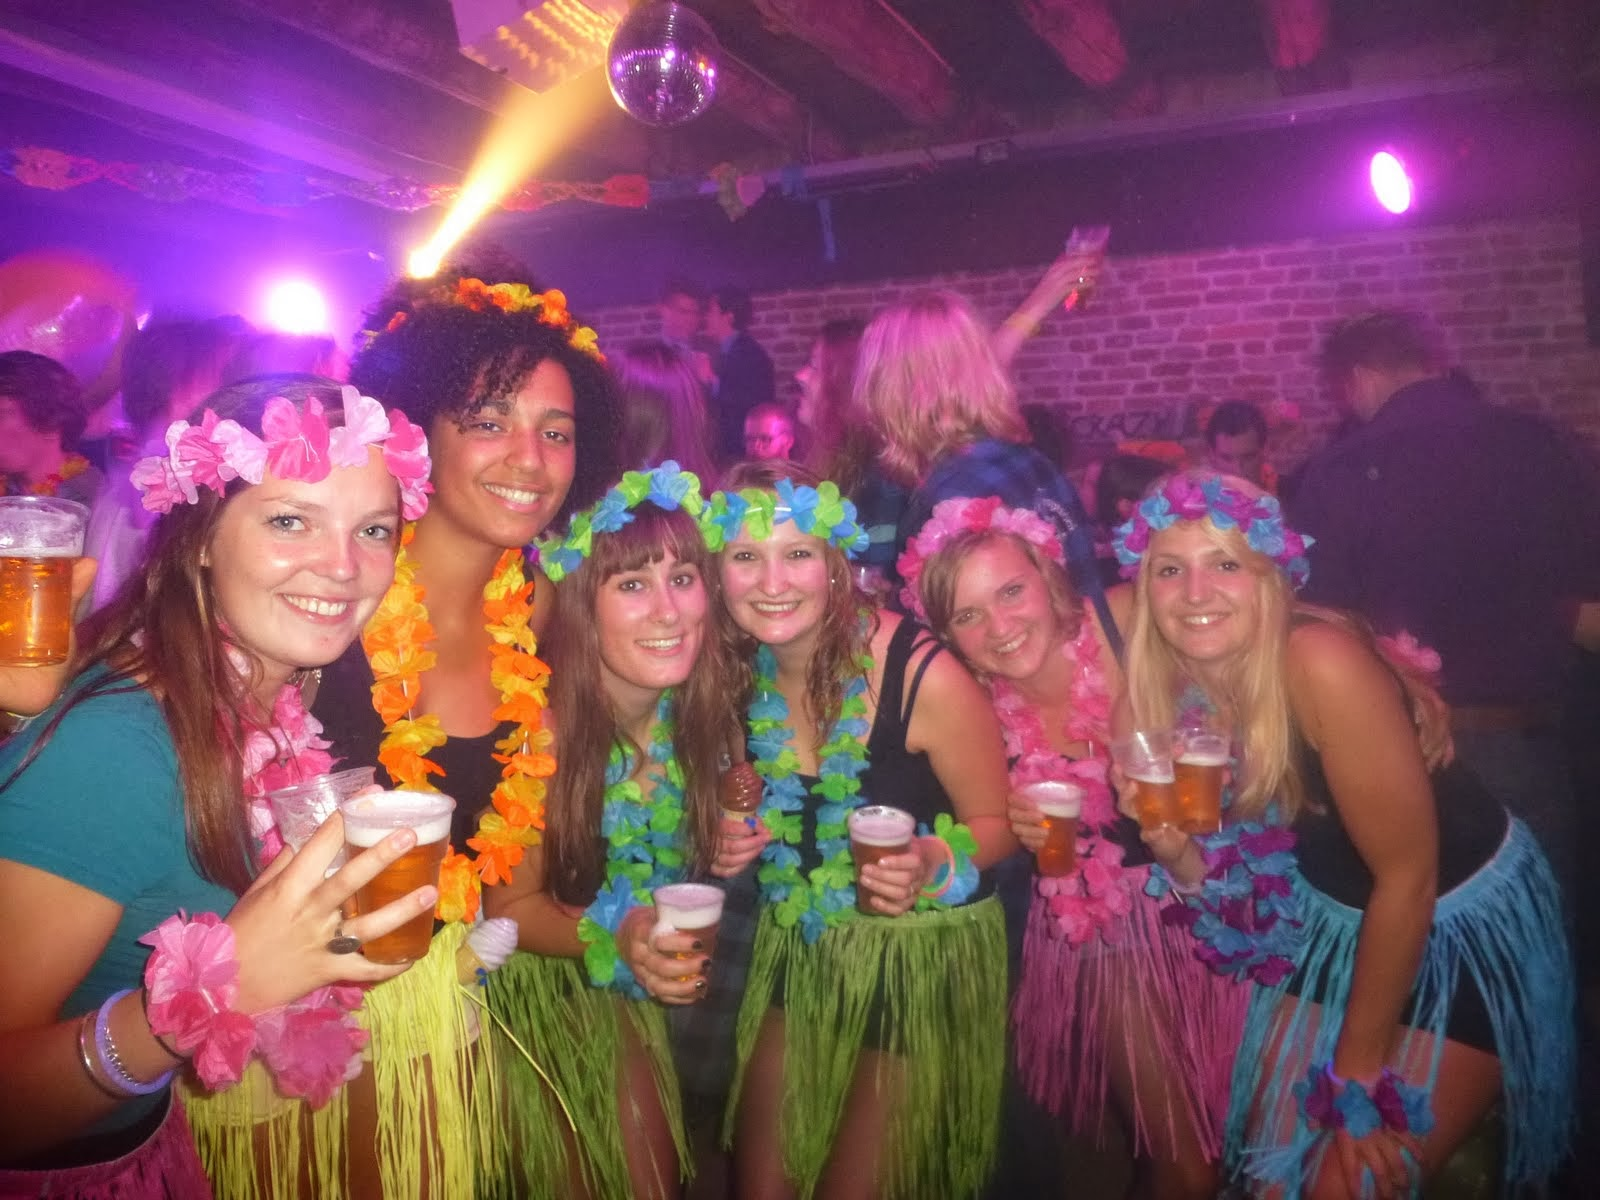 Hawaii party door JC LeF